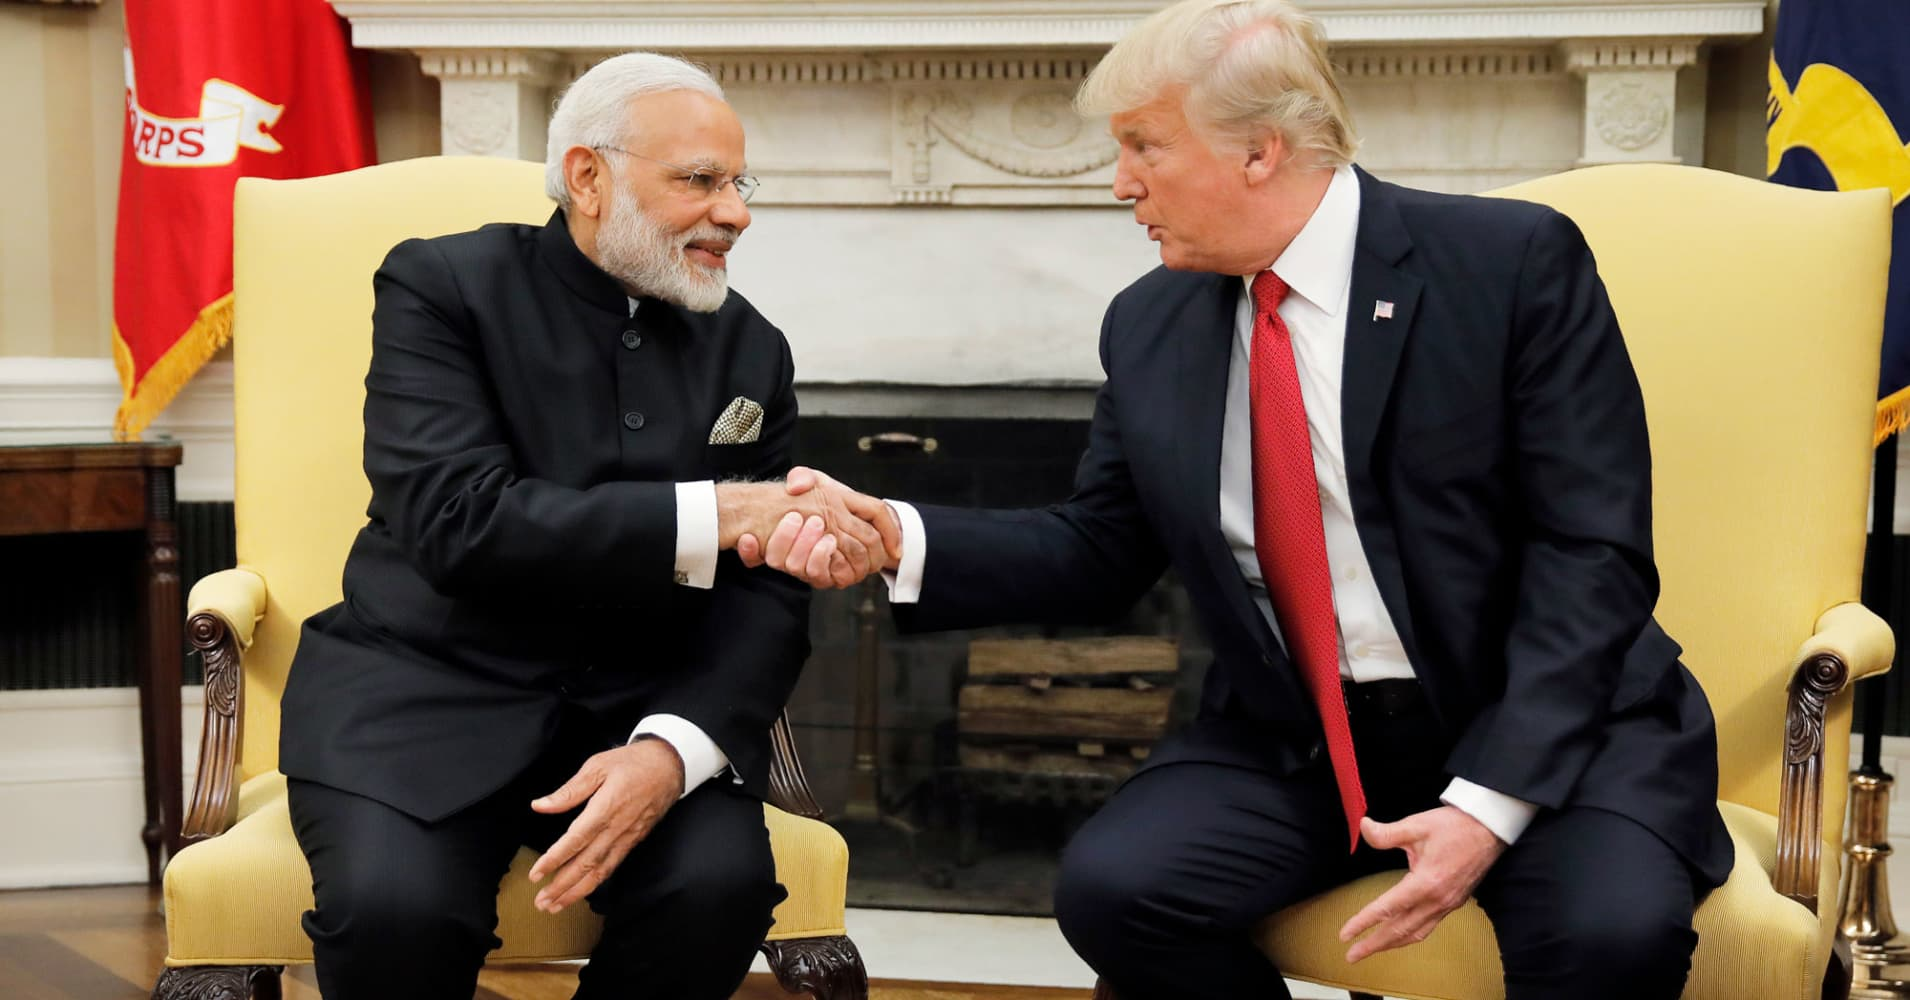 India's trajectory of spending on US defense equipment will continue: Expert